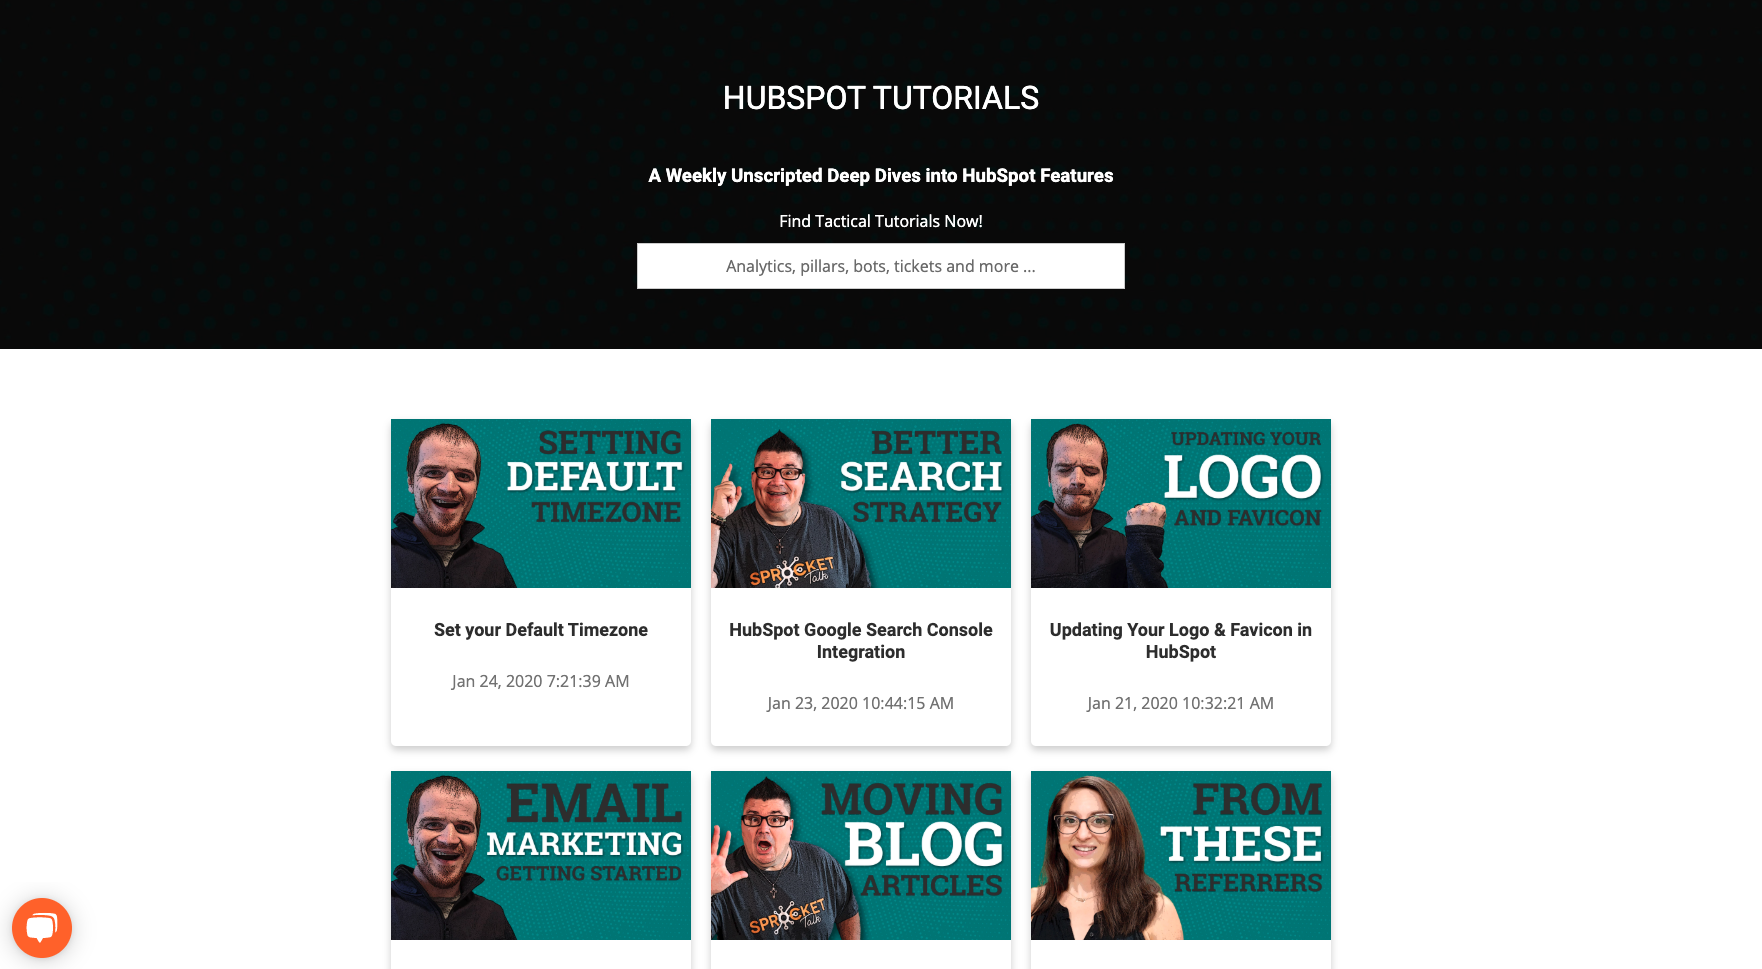 HubSpot Tutorials